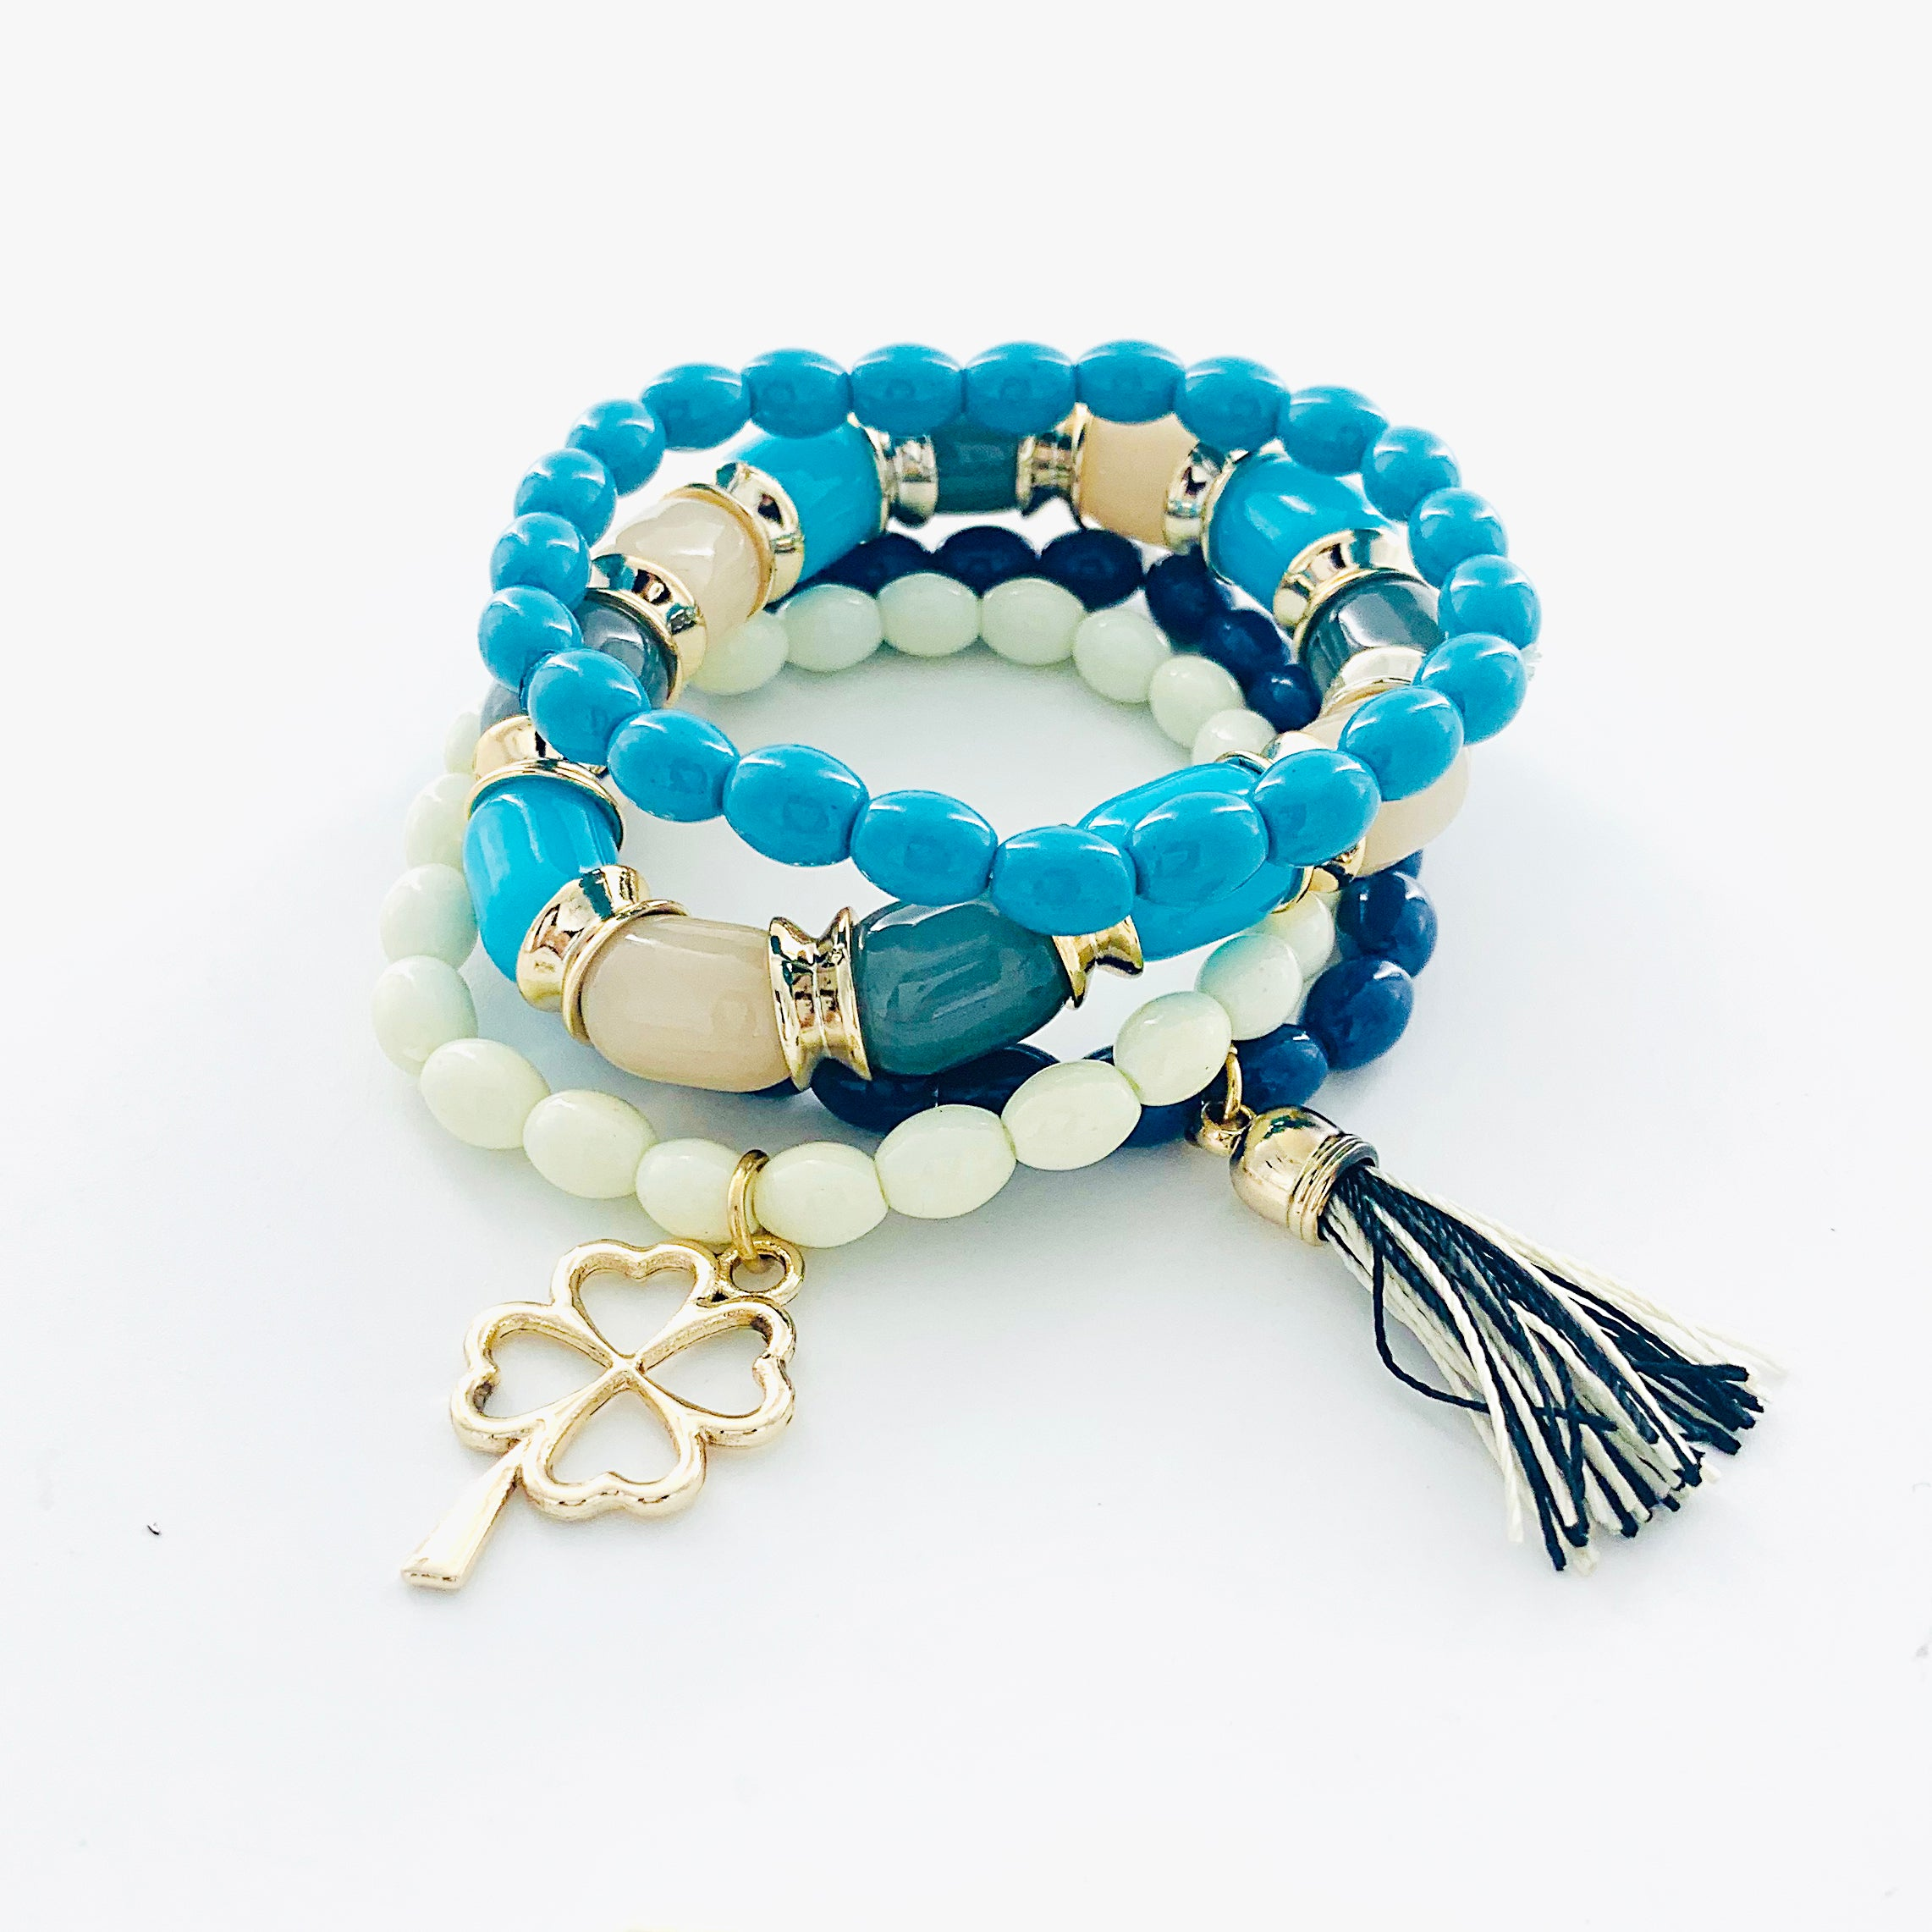 Blue and White bracelet with gold clover and tassel charm